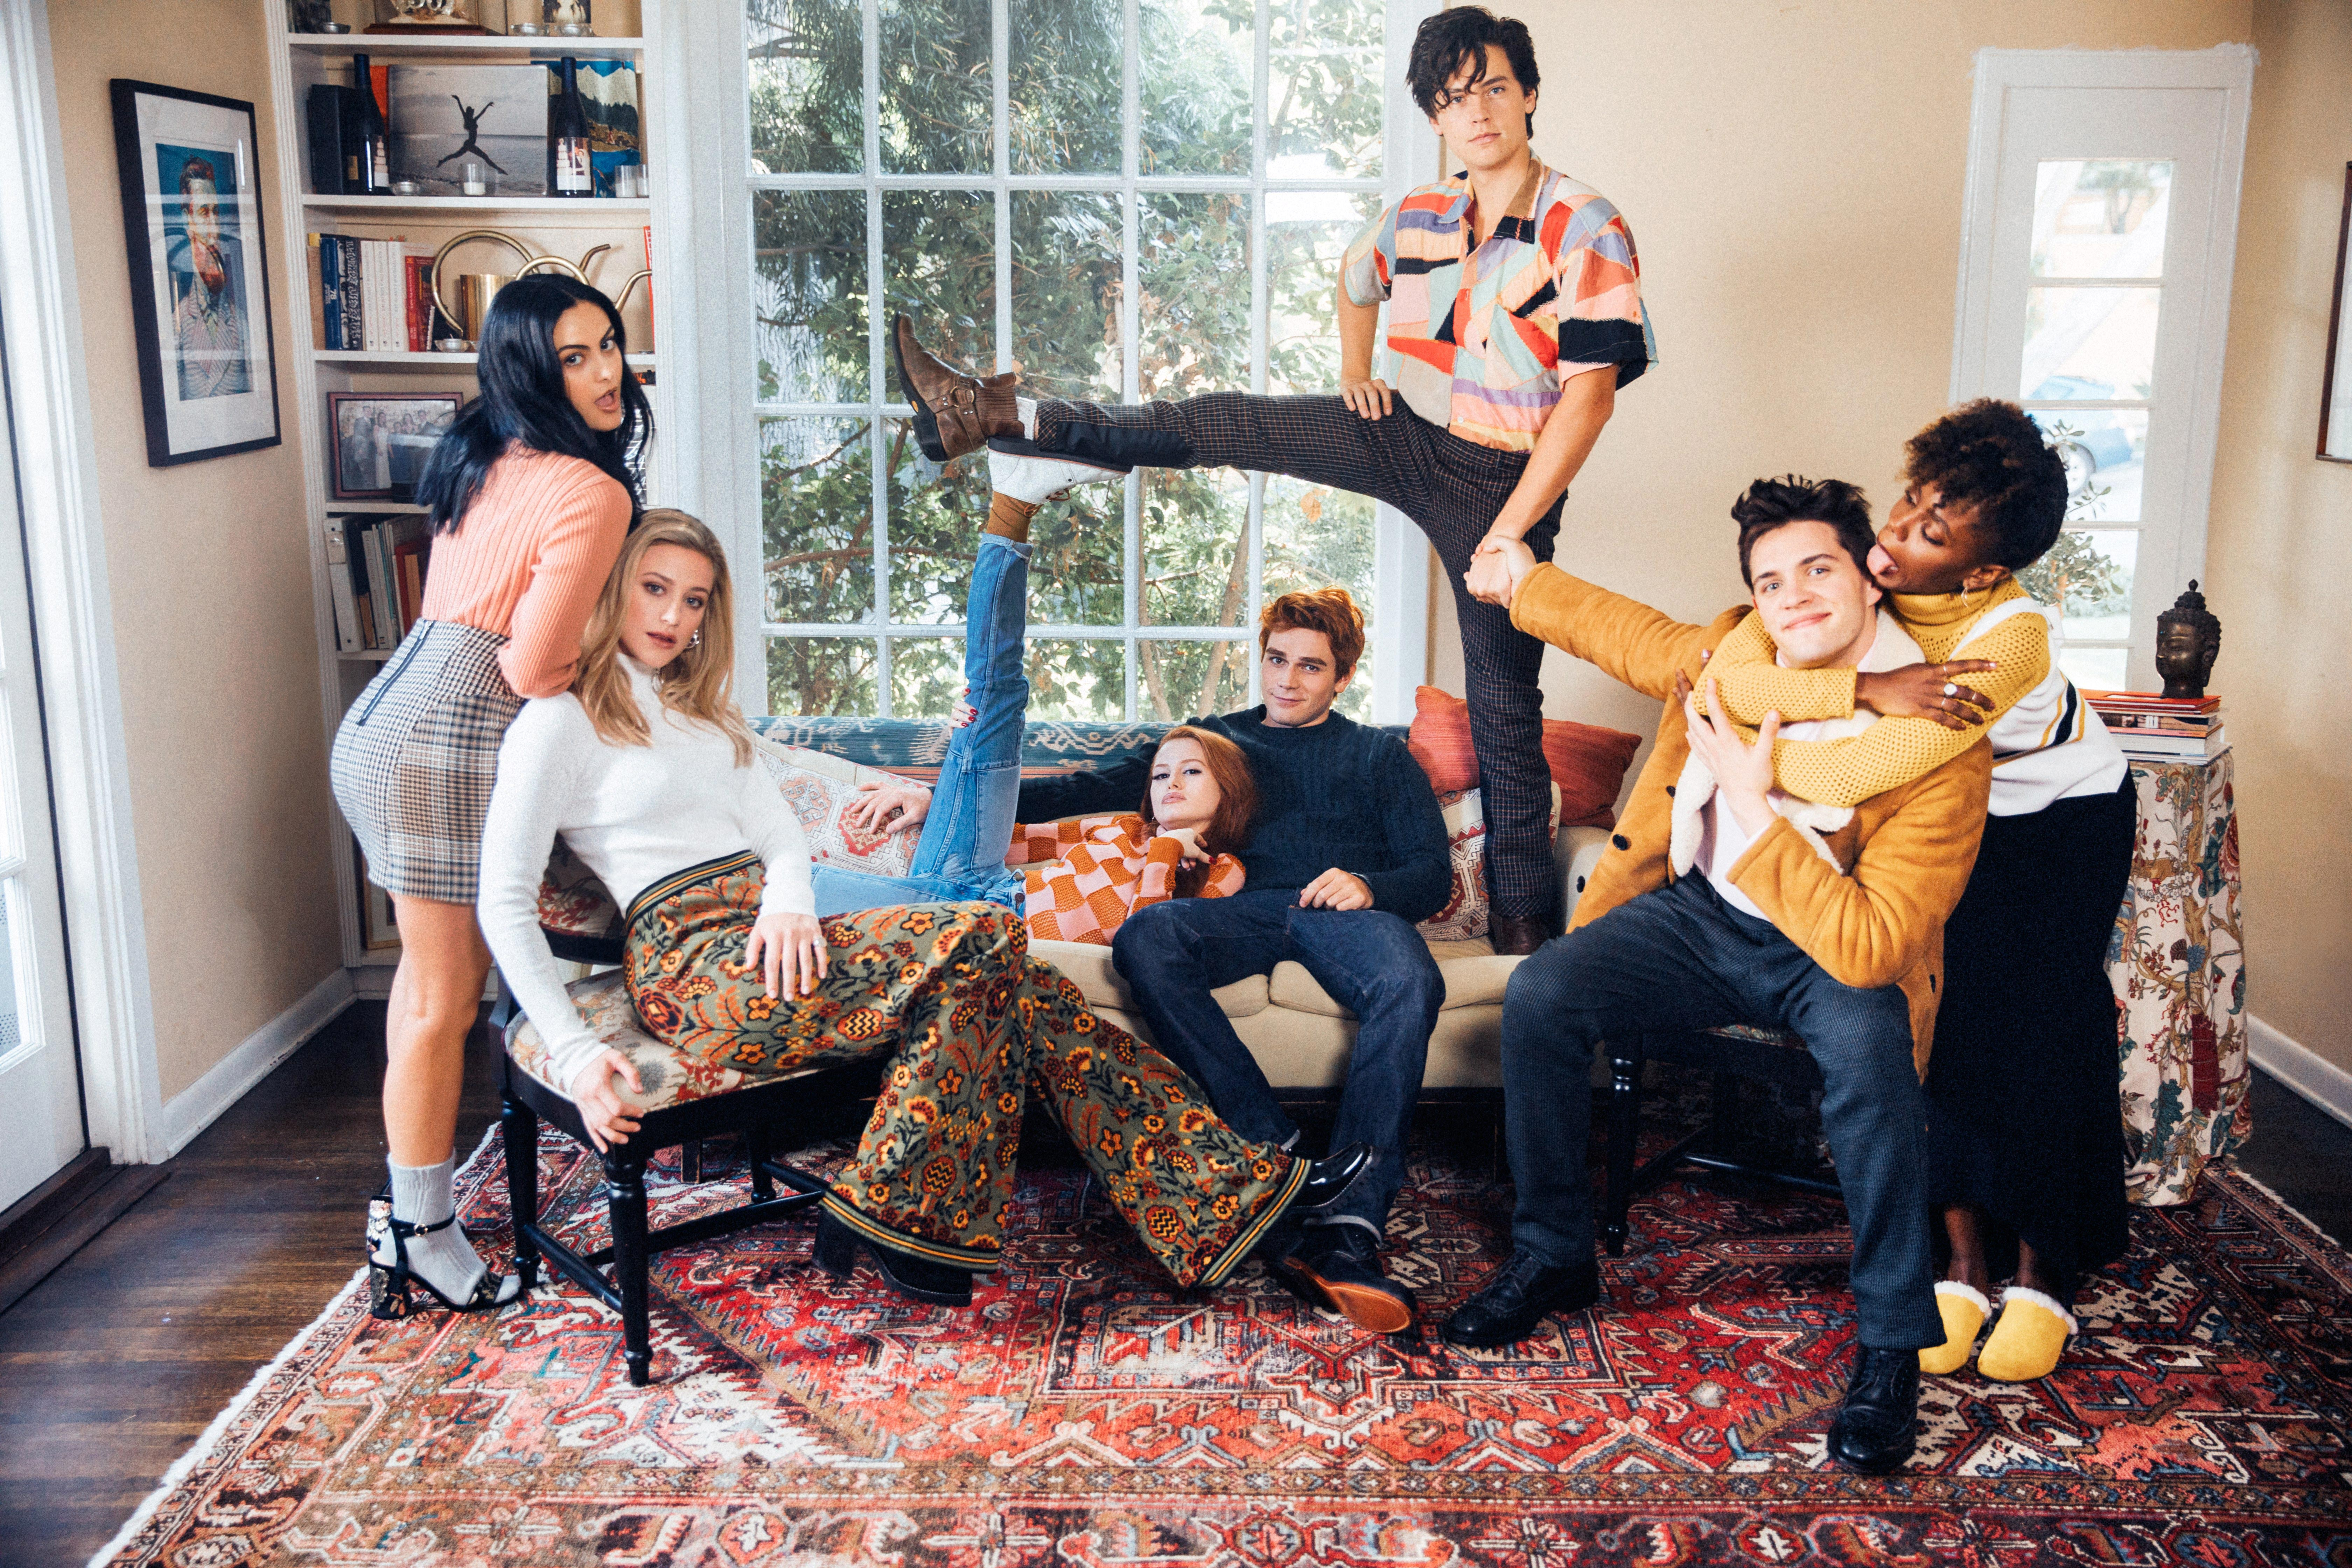 Cool 3d Wallpapers For Walls 2048x1152 Riverdale Season 2 Cast Photoshoot 5k 2048x1152